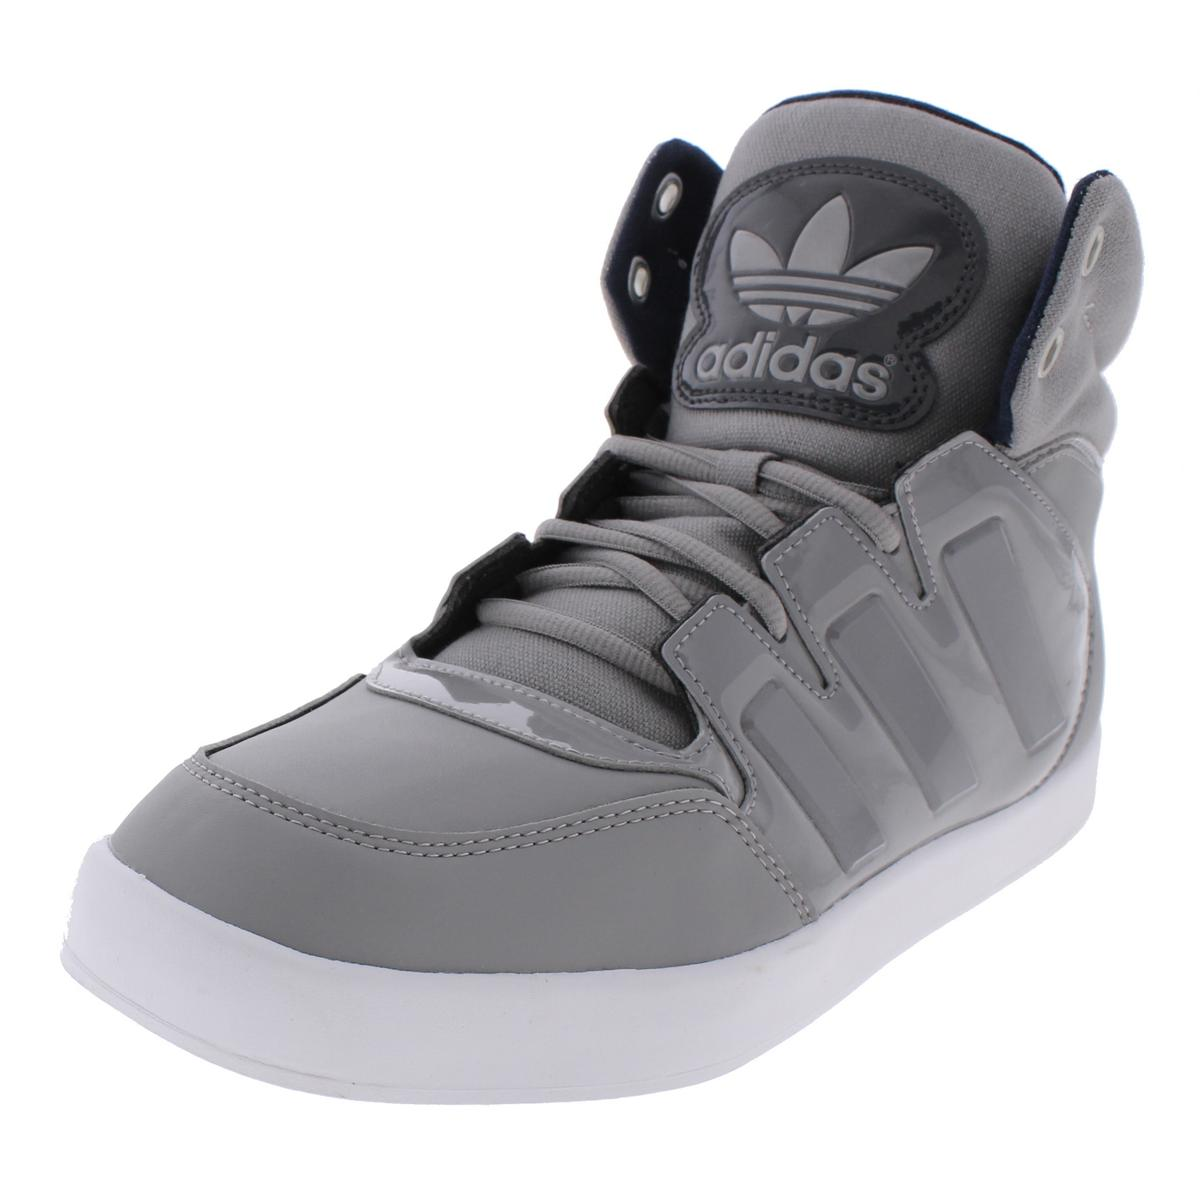 Adidas Mens Dropstep High Top Trainers Athletic Shoes by Adidas